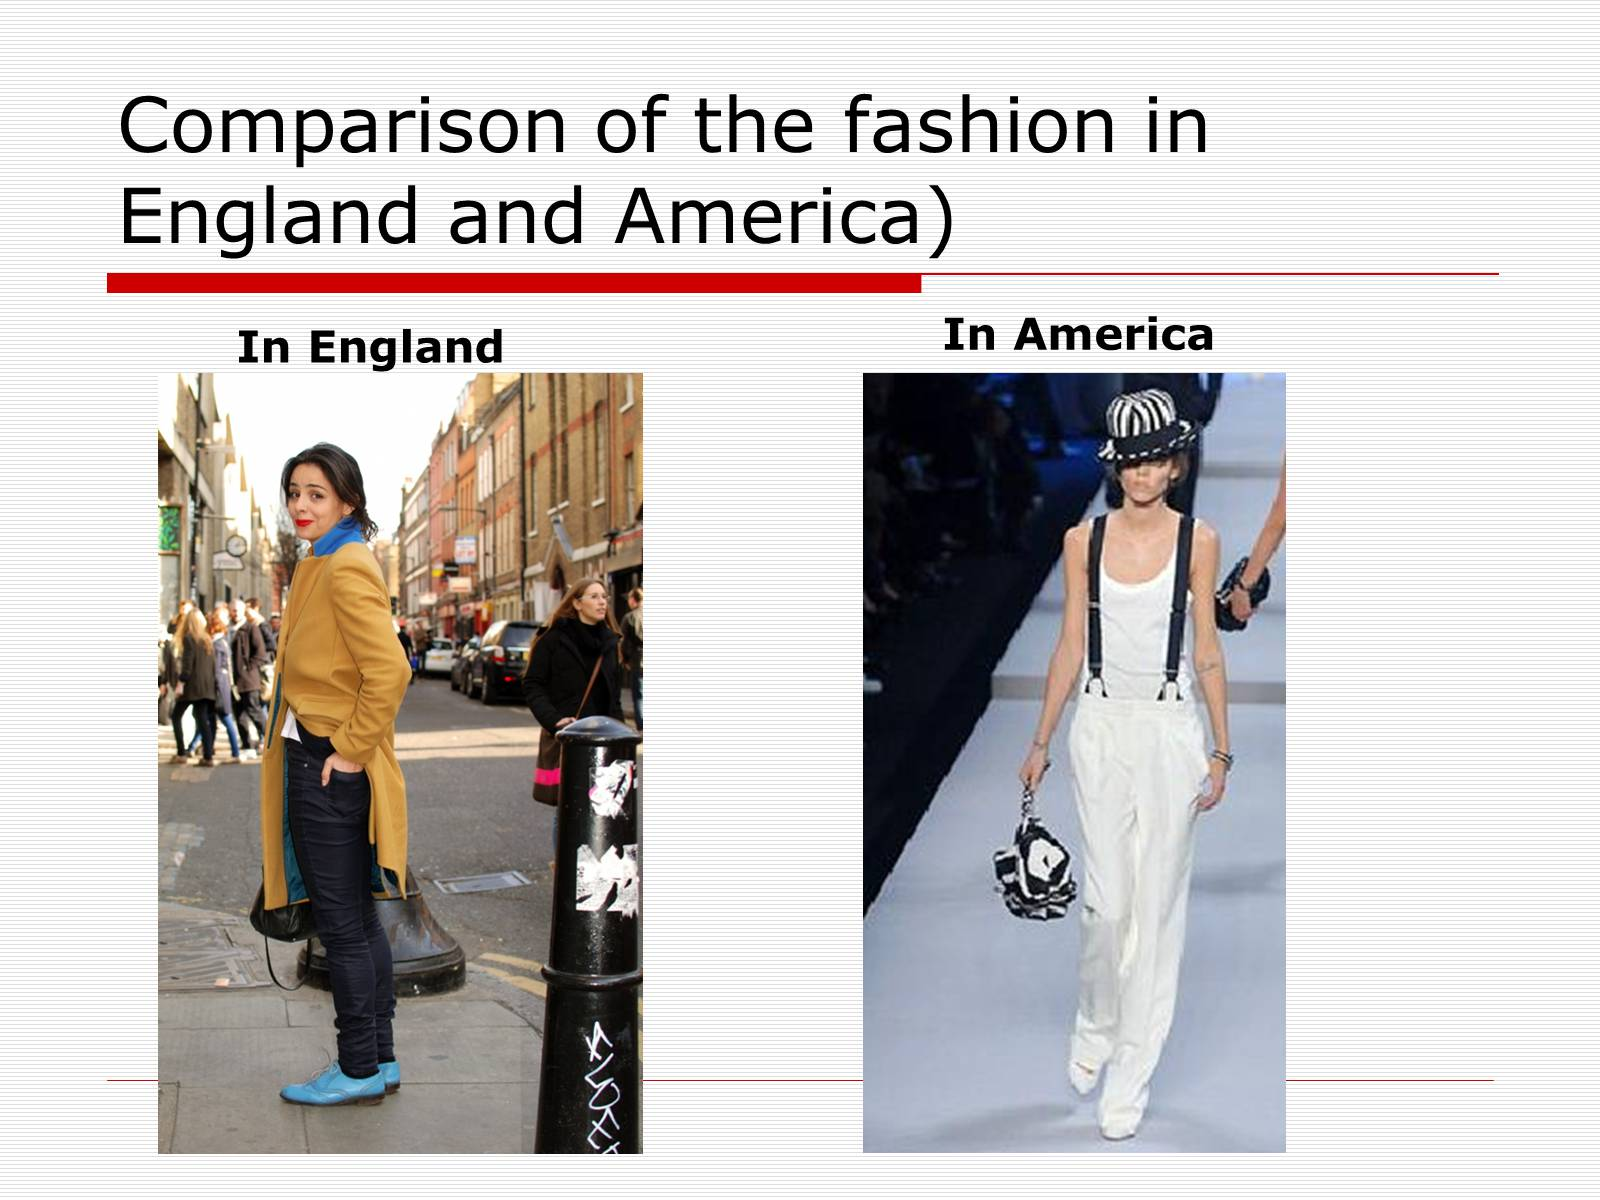 Презентація на тему «Comparison of the fashion in England and America» - Слайд #26